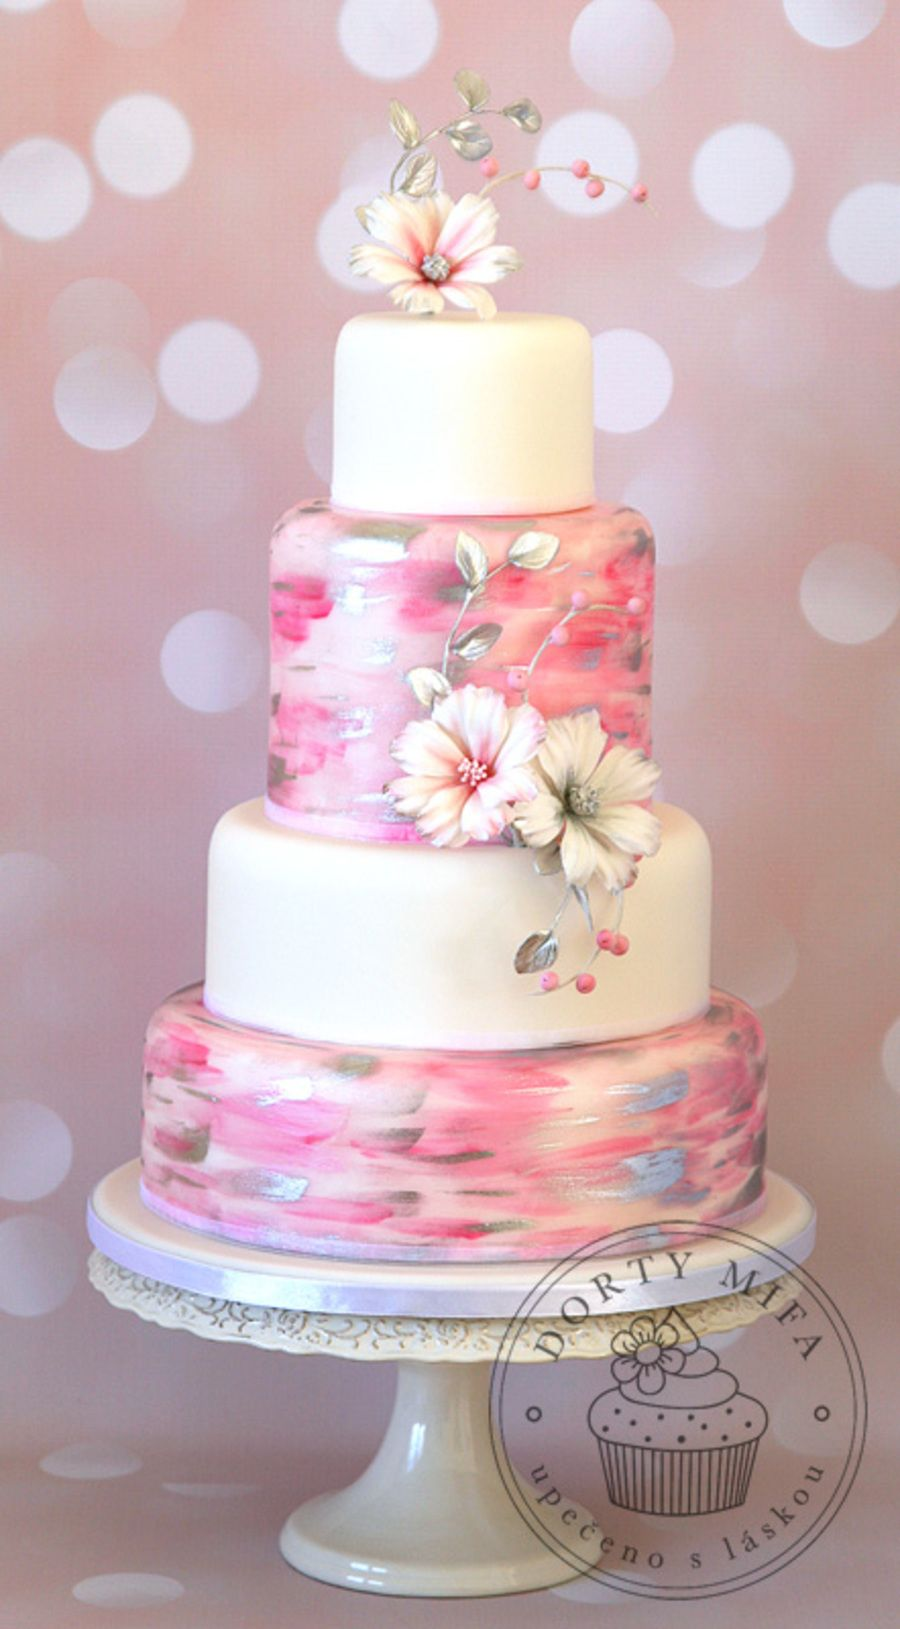 Hand painted wedding cake i would never get married again but this